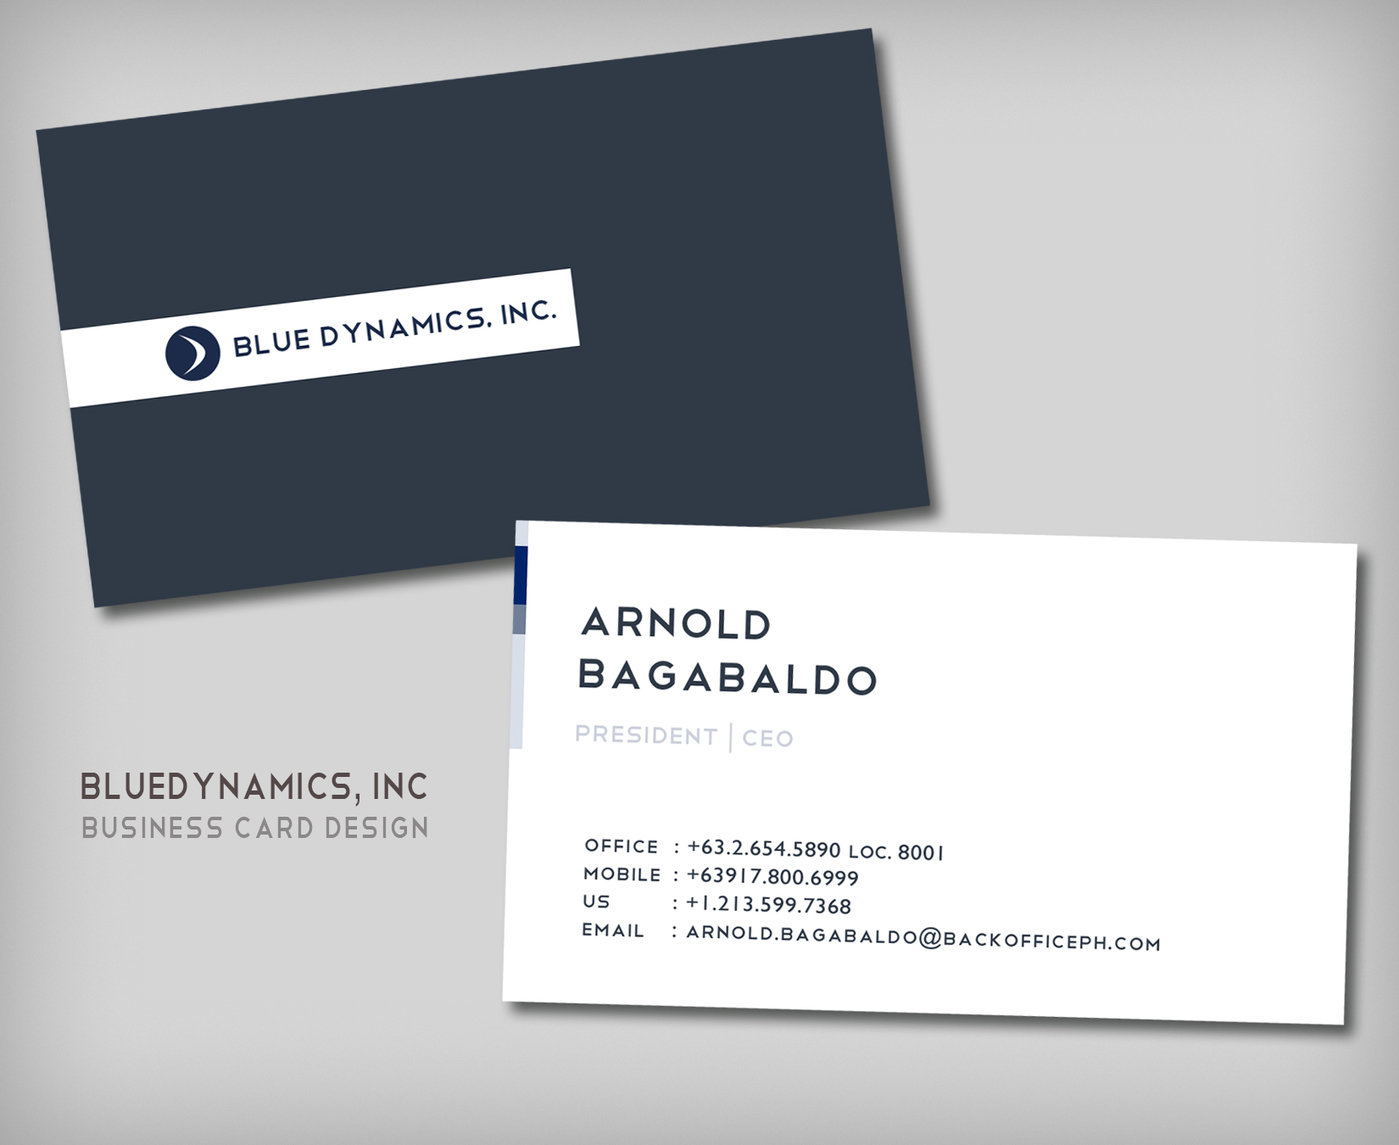 BUSINESS CARD by Katherine Lor at Coroflot.com